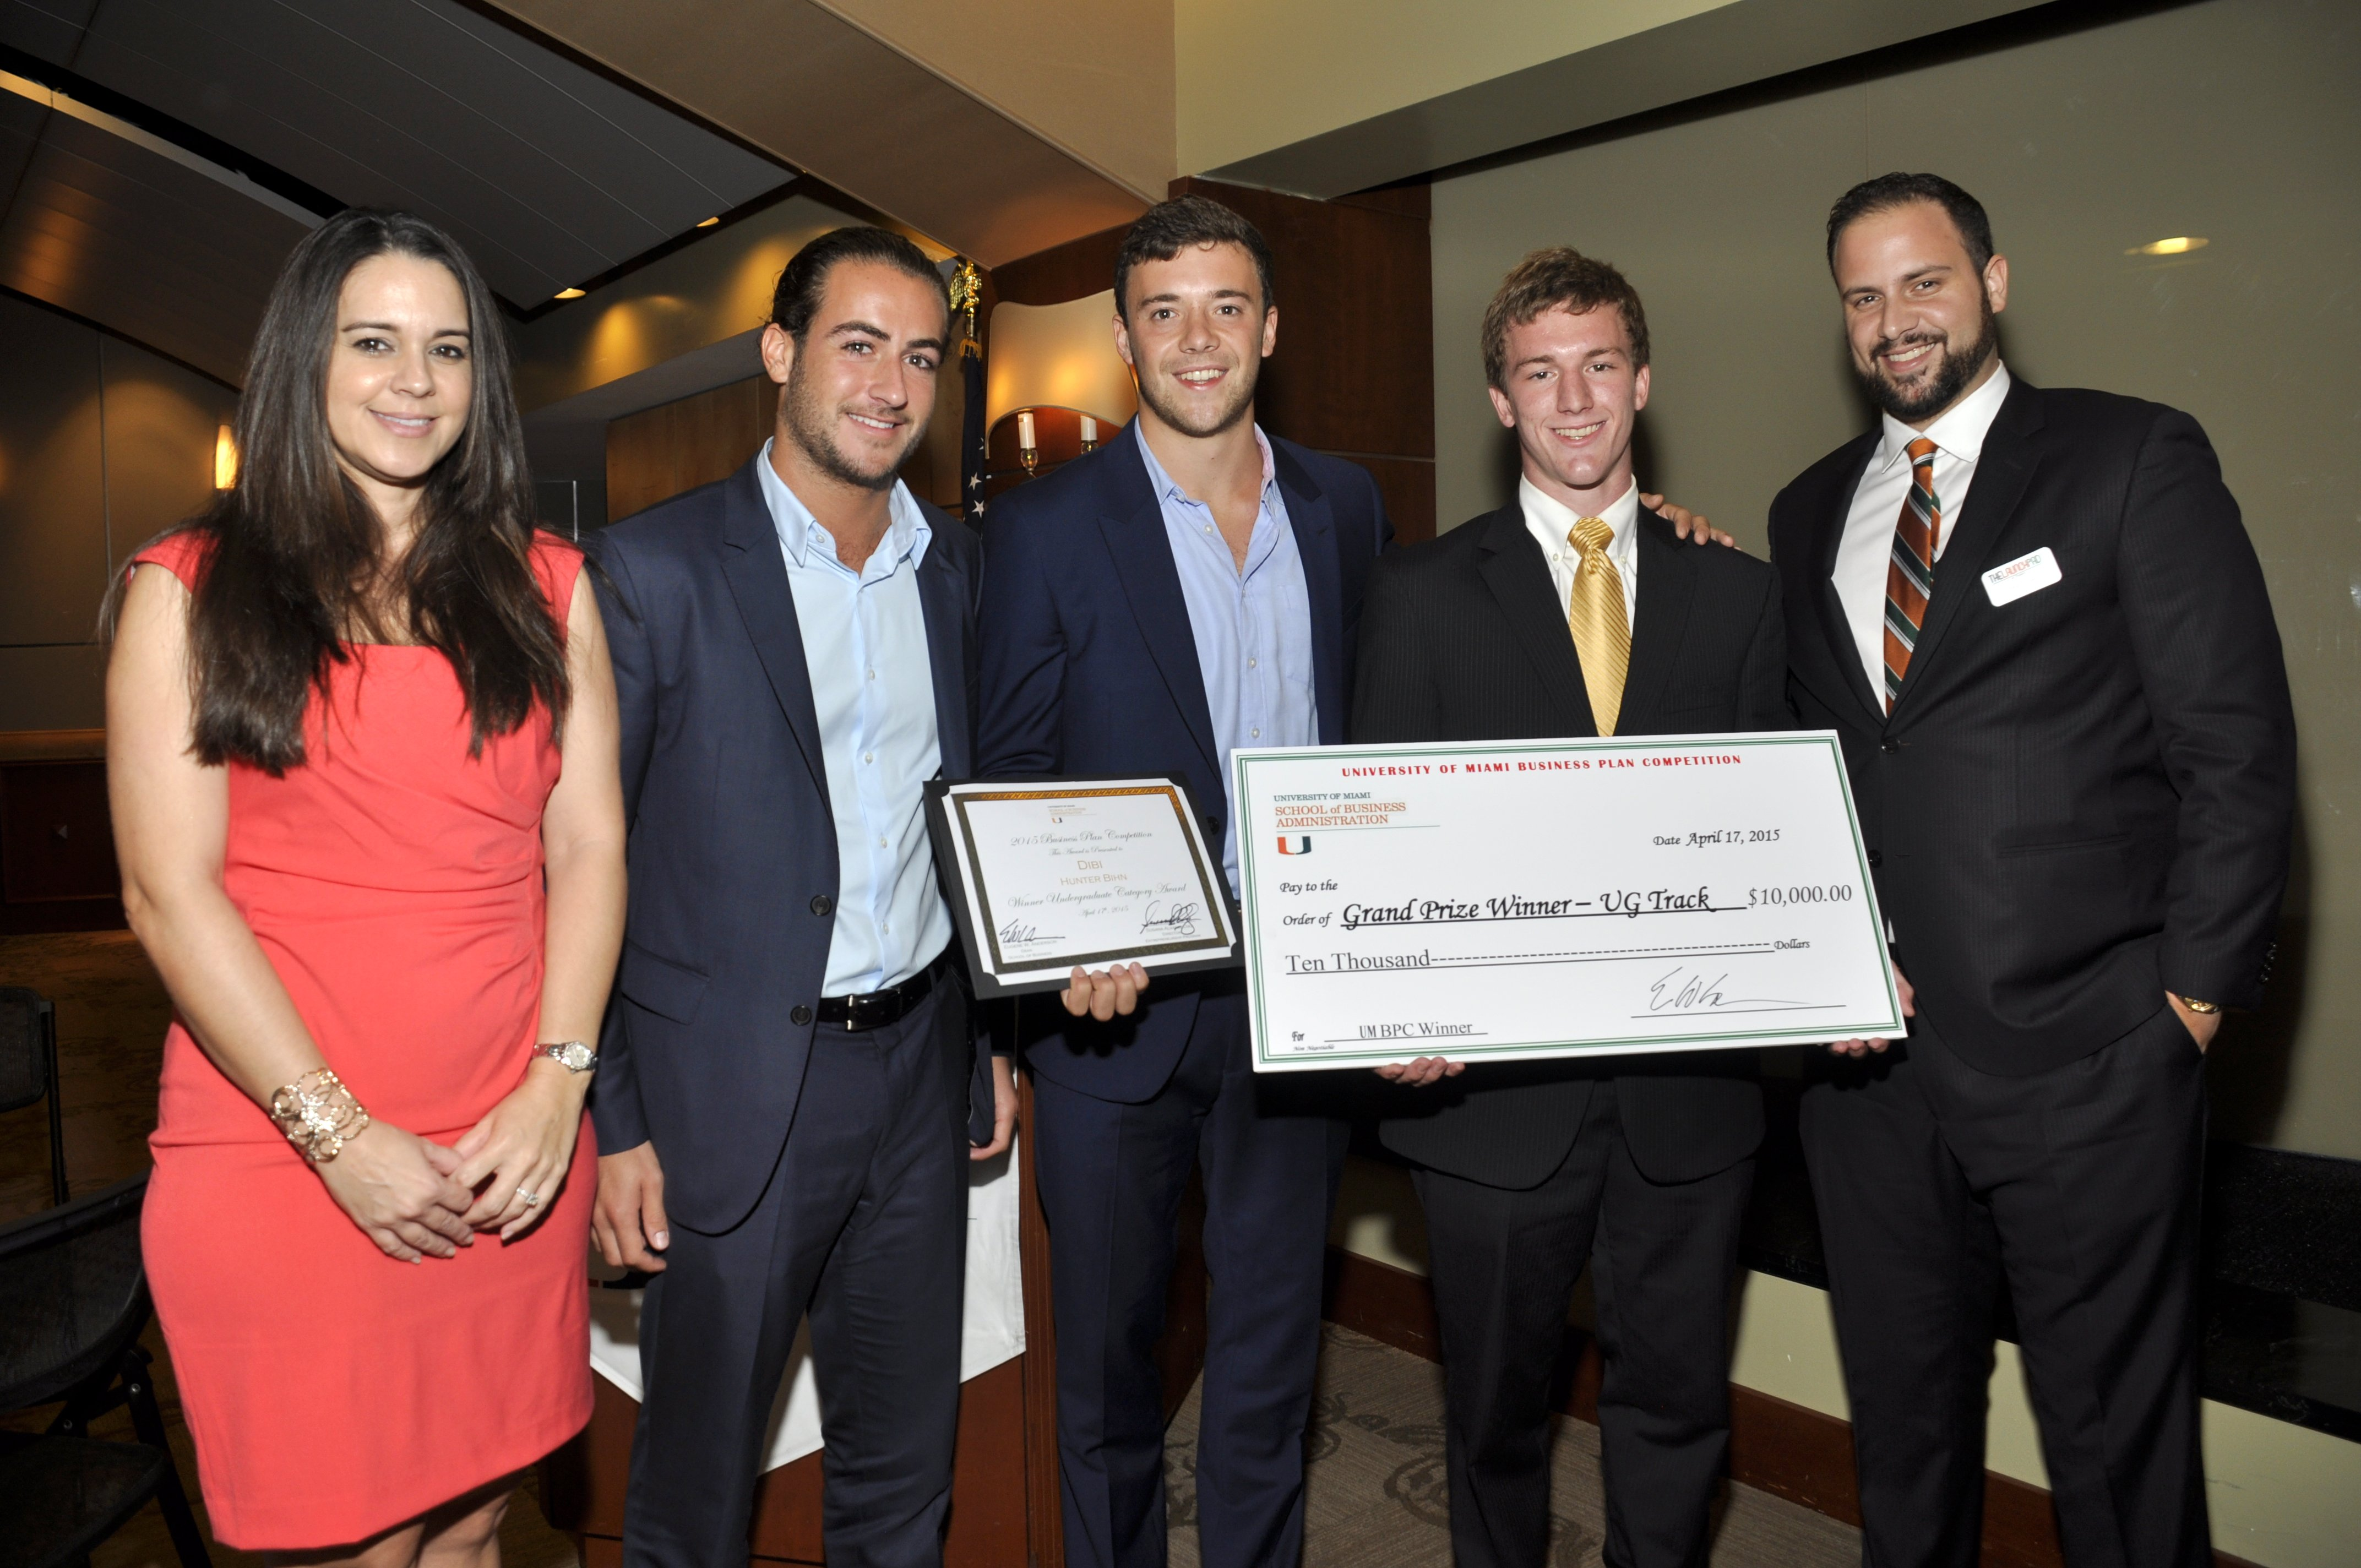 business plan competition winners